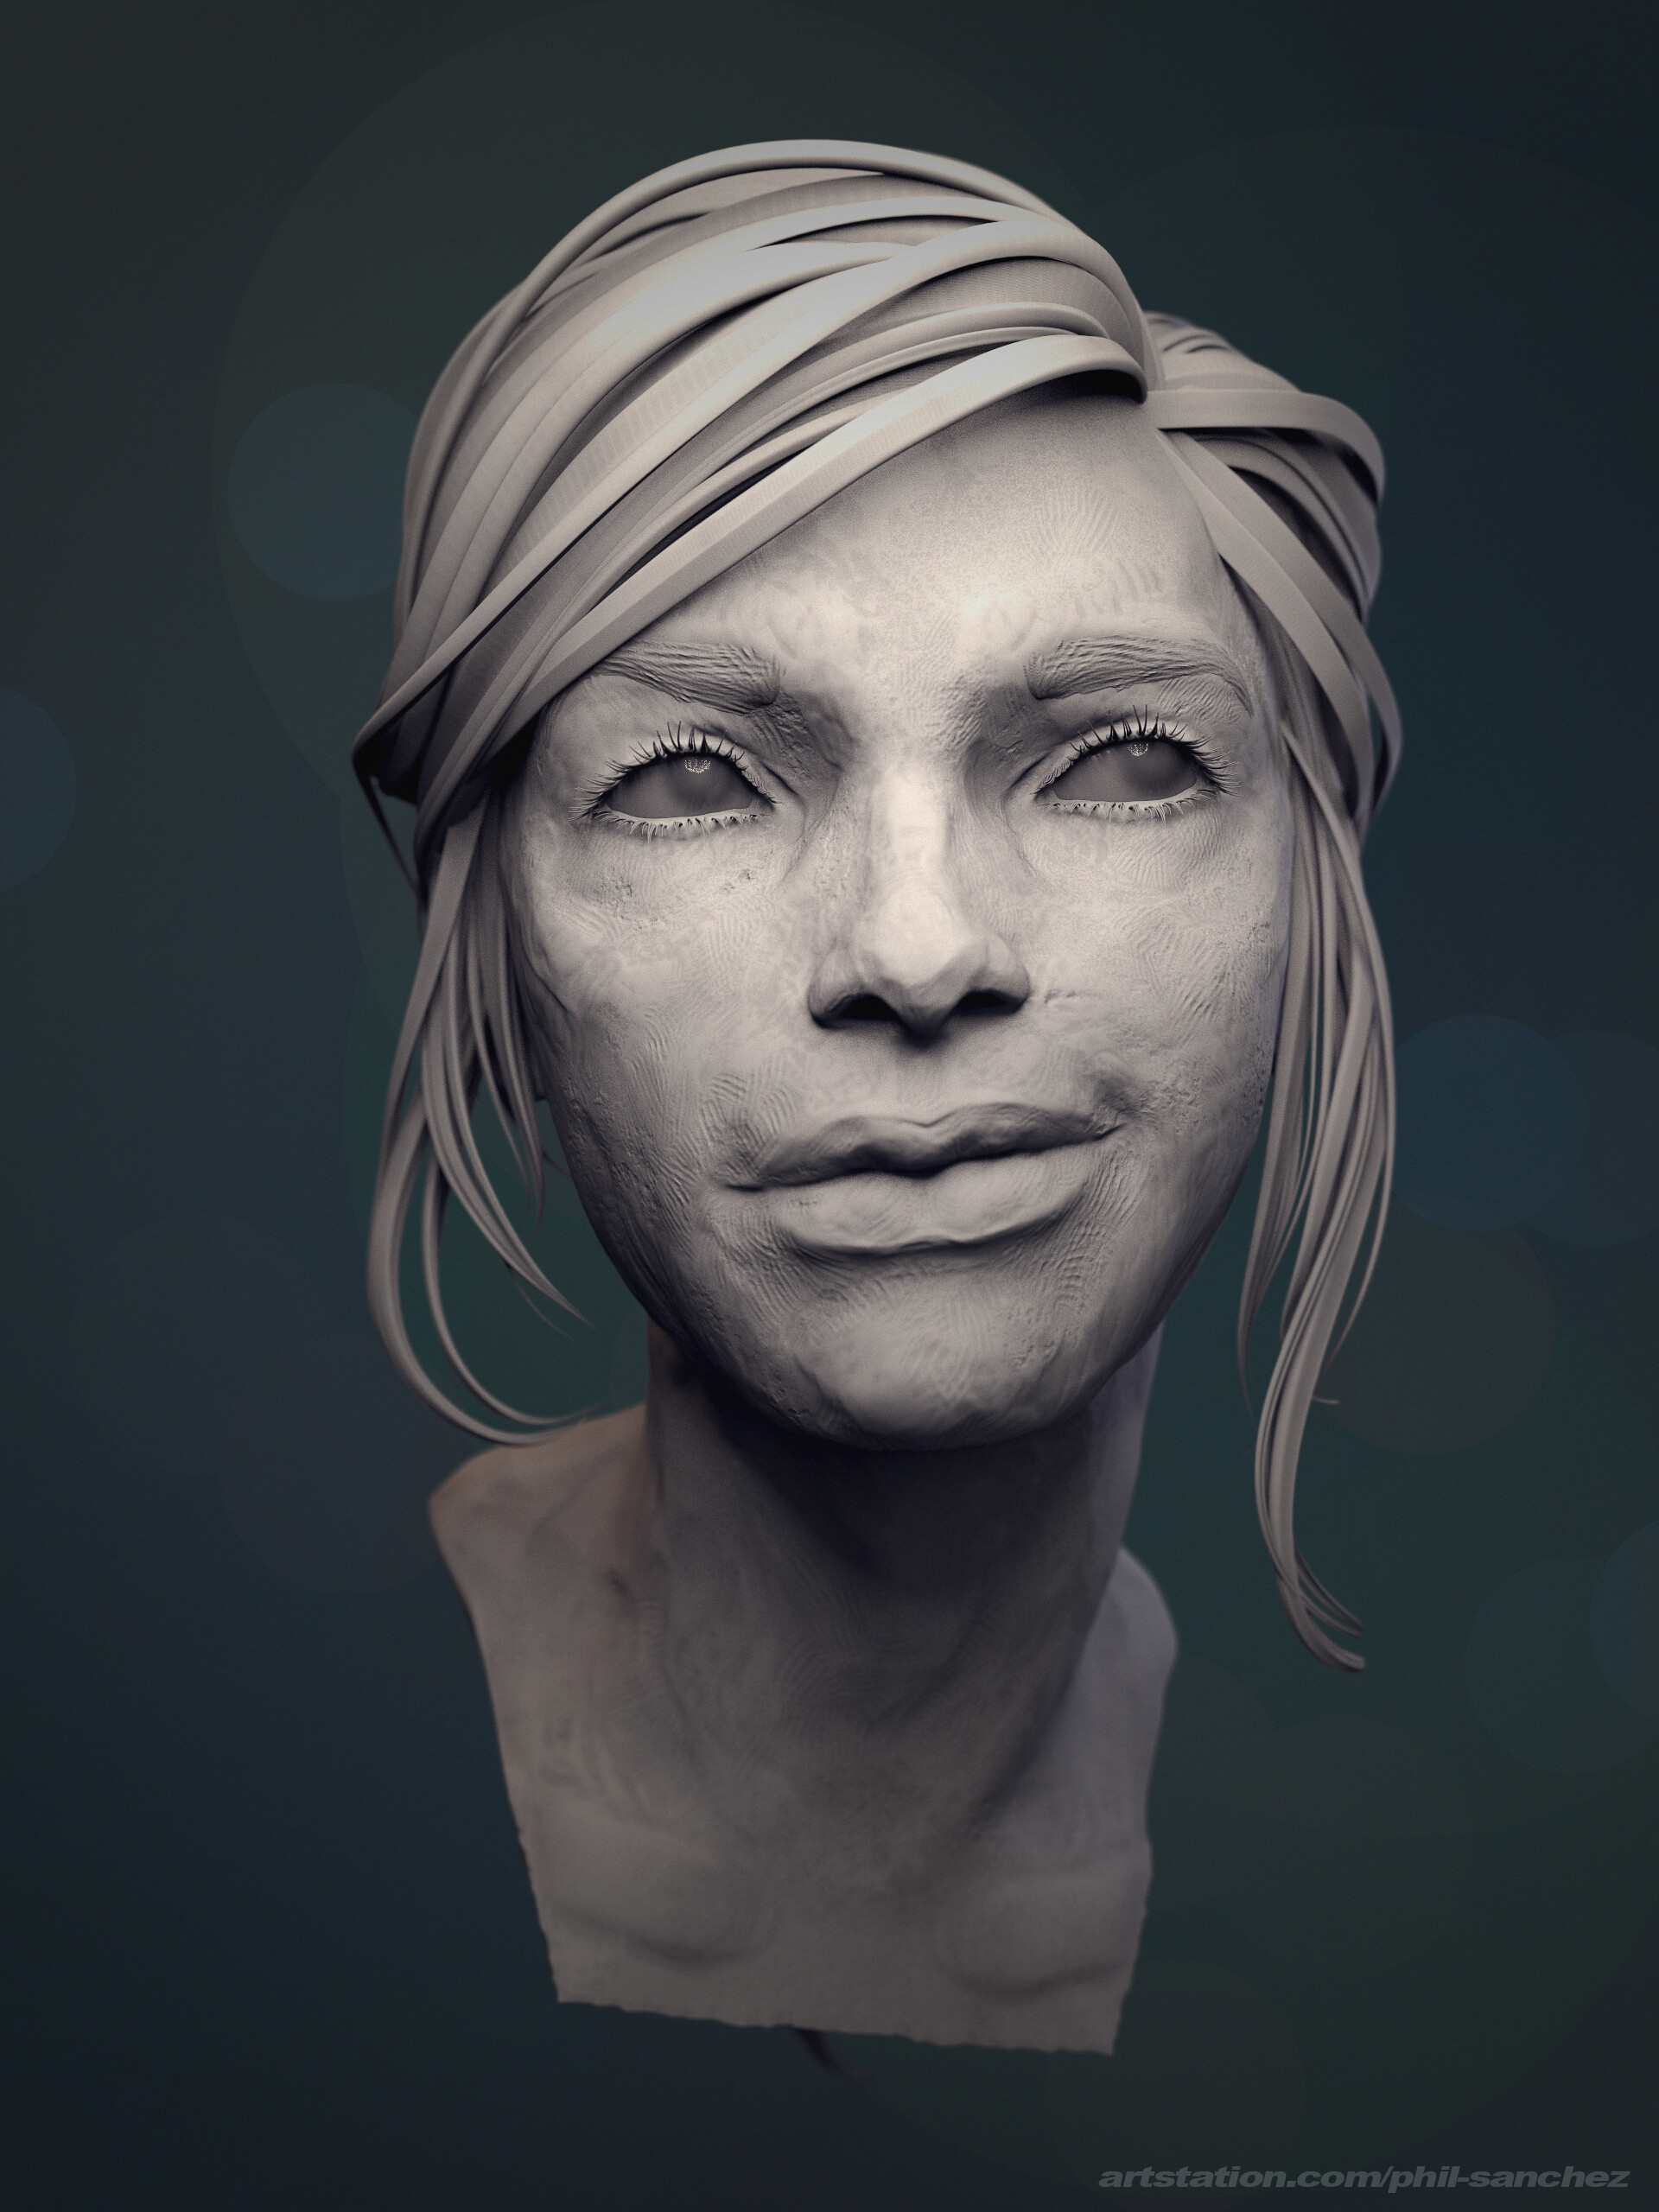 Philip sanchez girlheadrender02